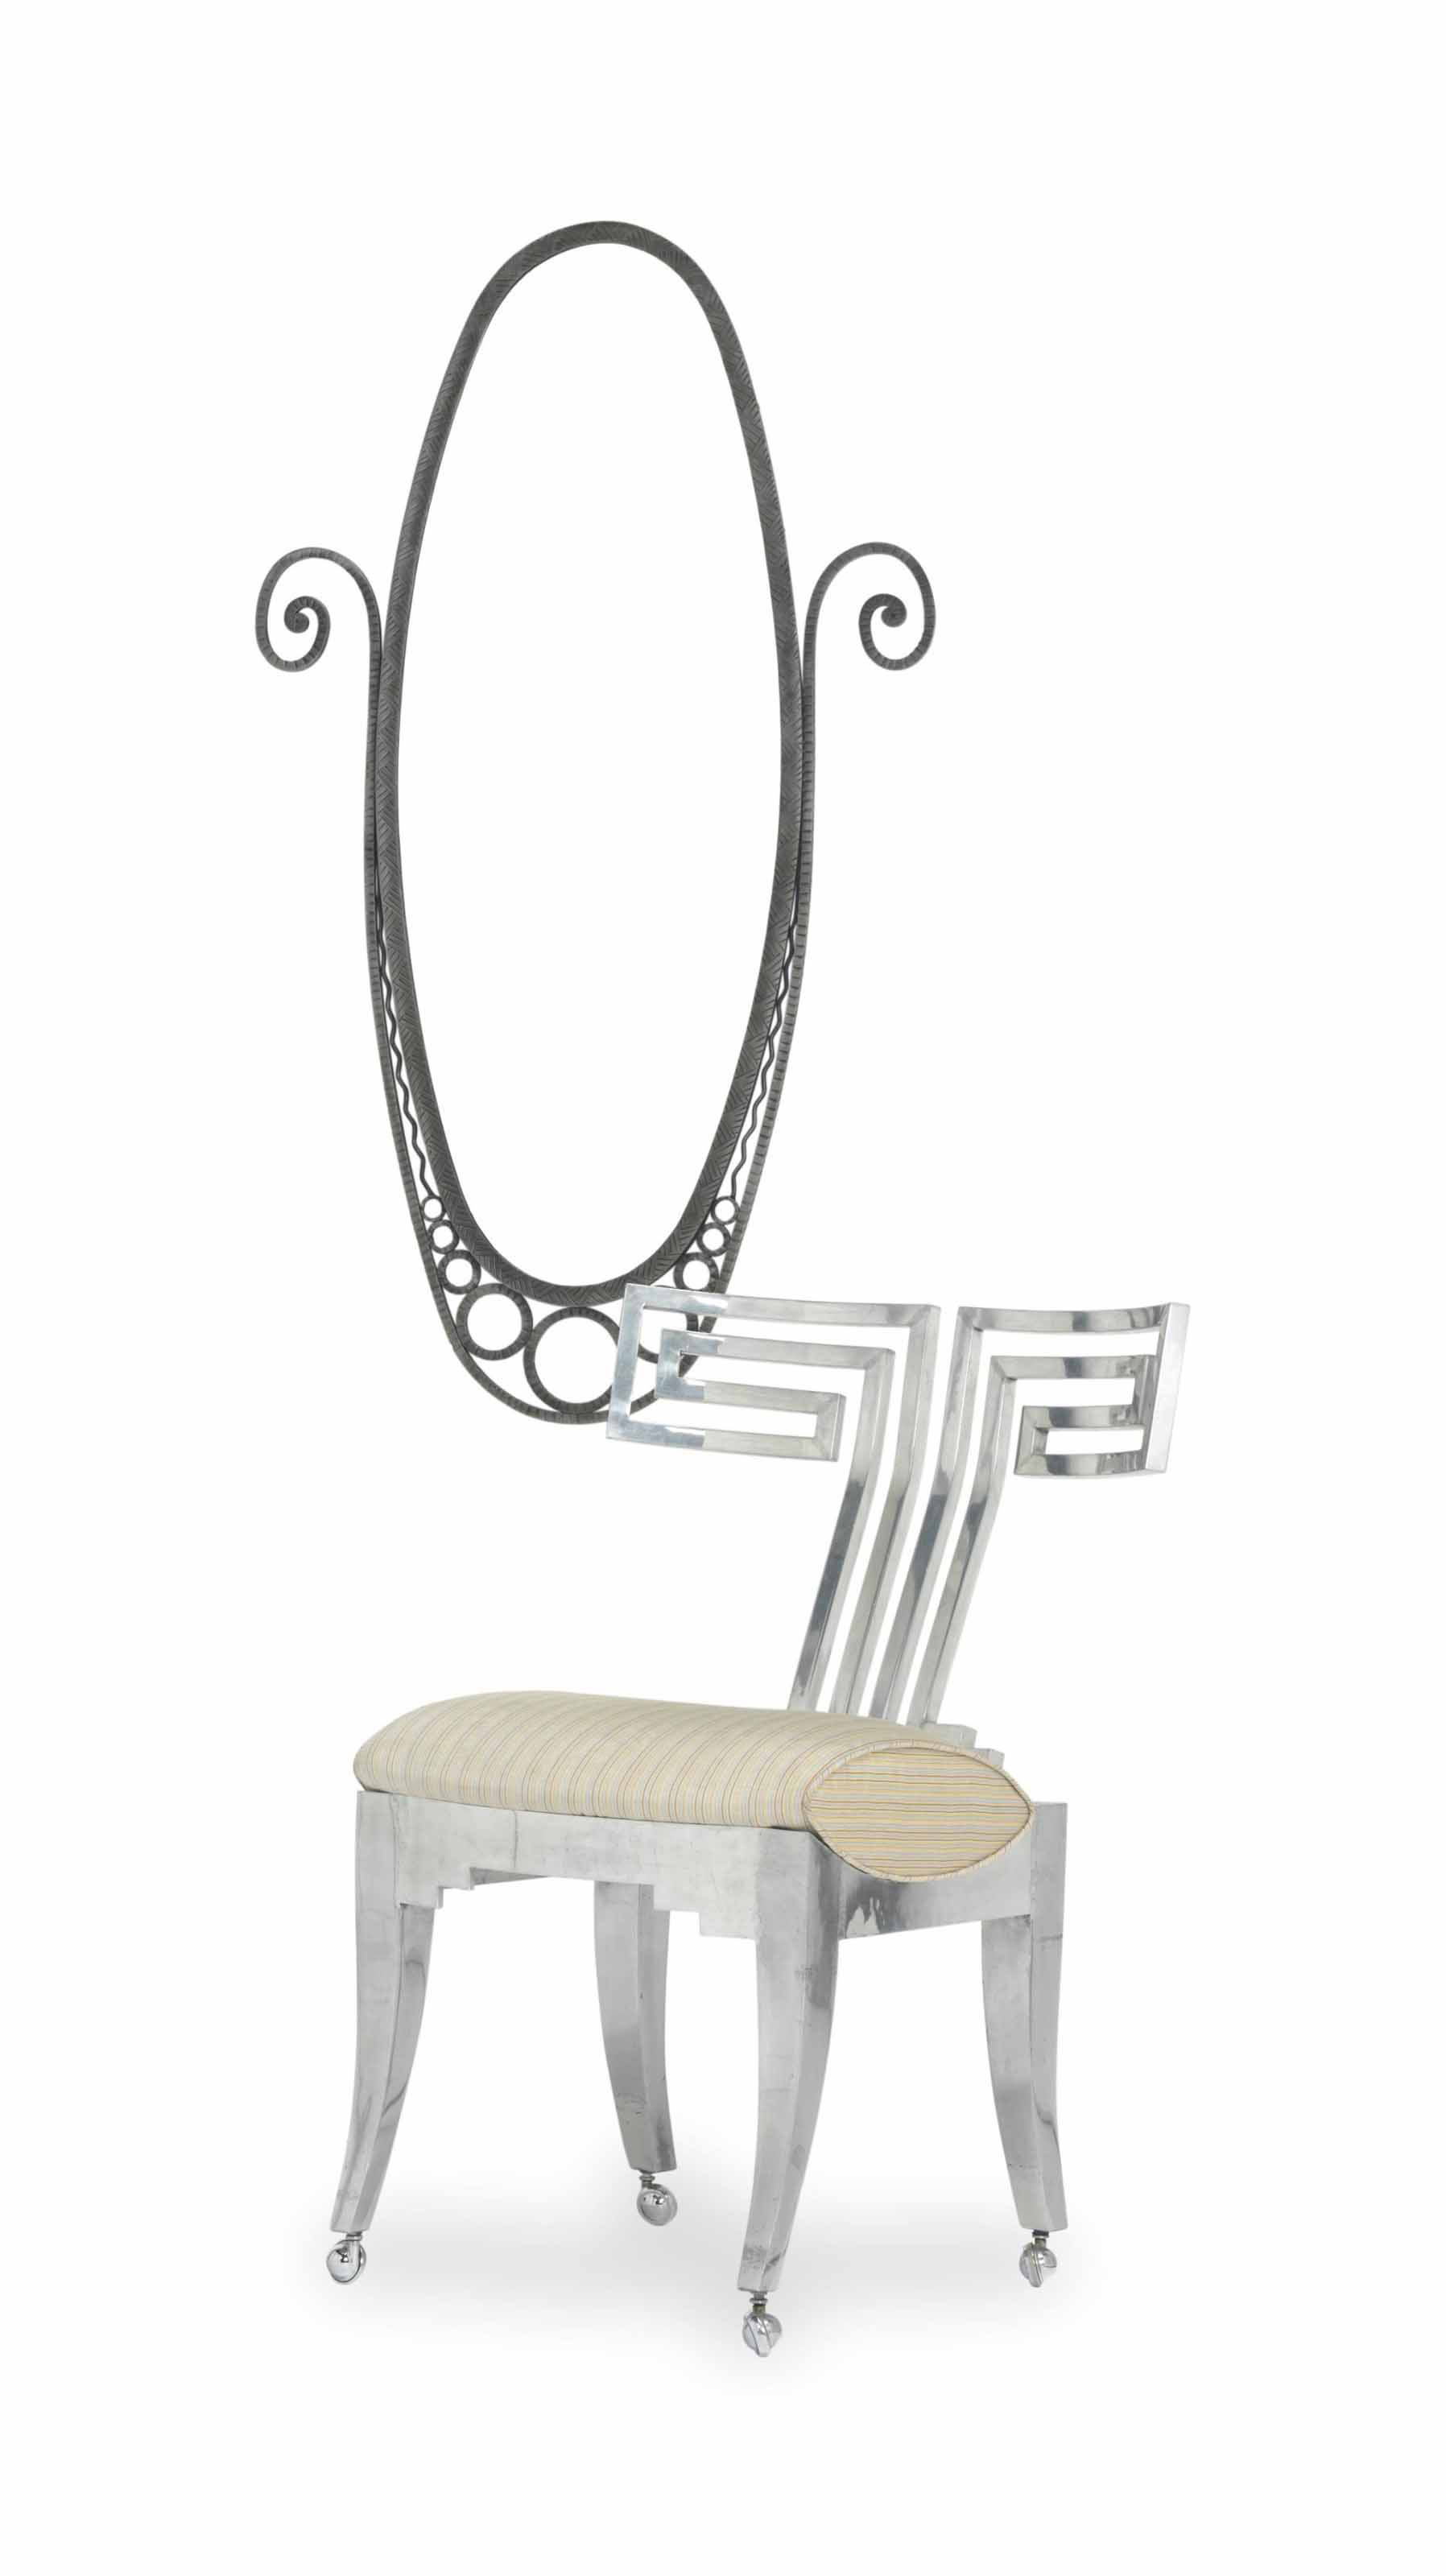 A CHROMED METAL SIDE CHAIR AND A WROUGHT IRON MIRROR,